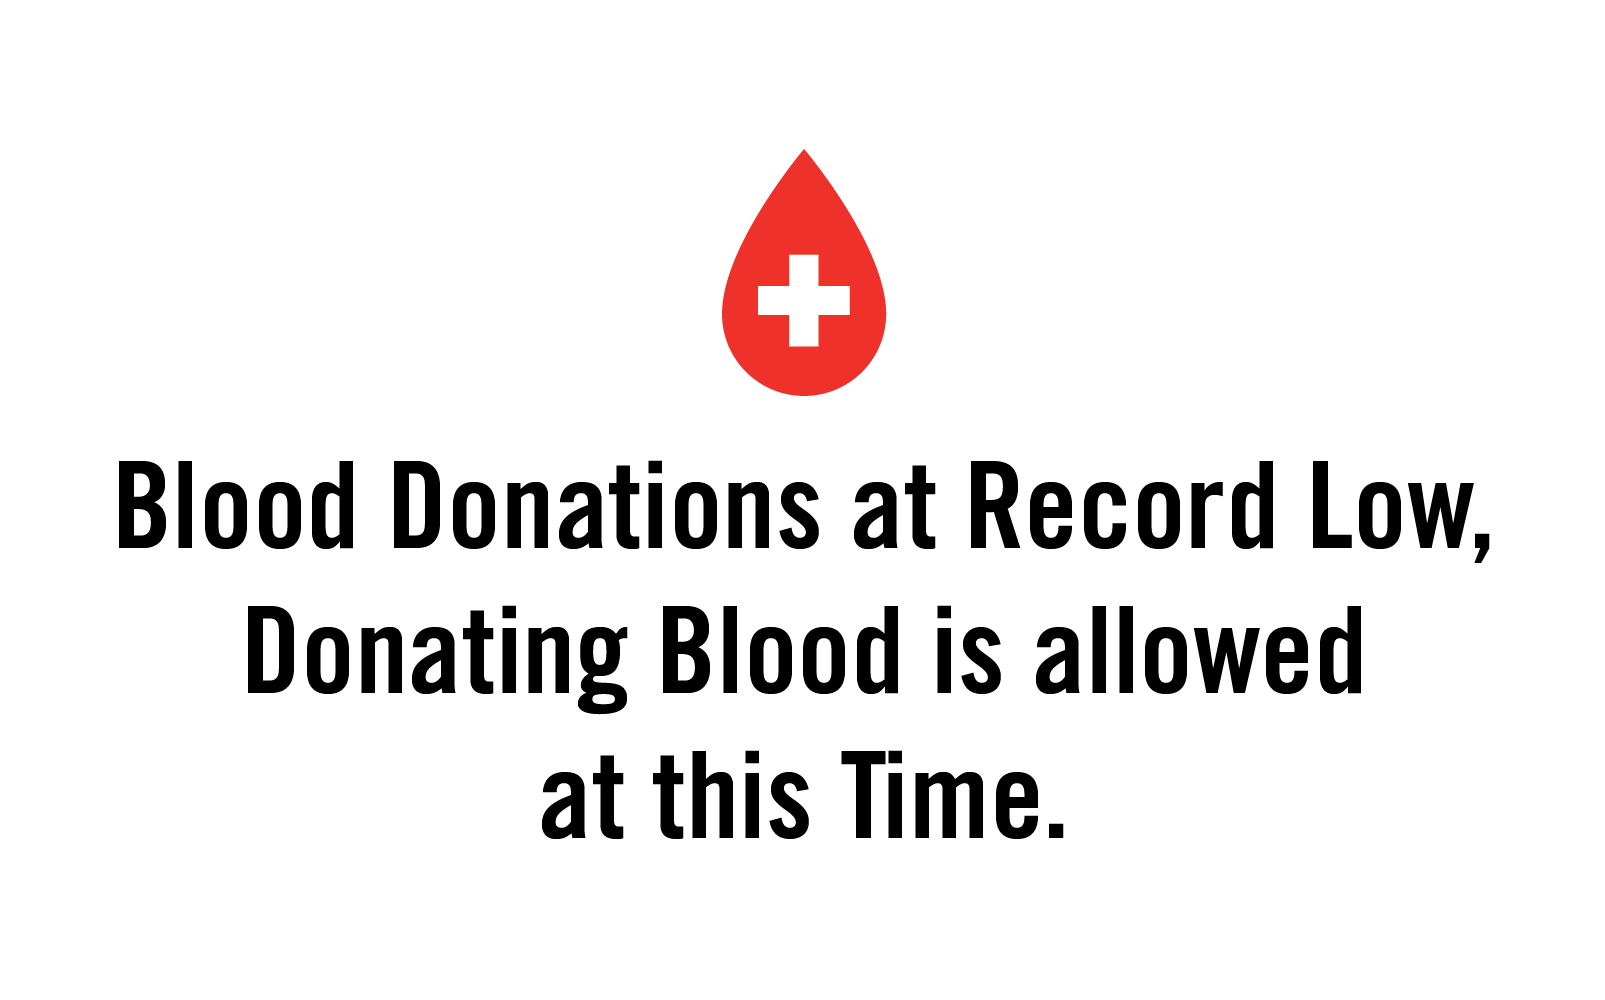 Blood Donations at Record Low, Donating Blood is Allowed at This Time